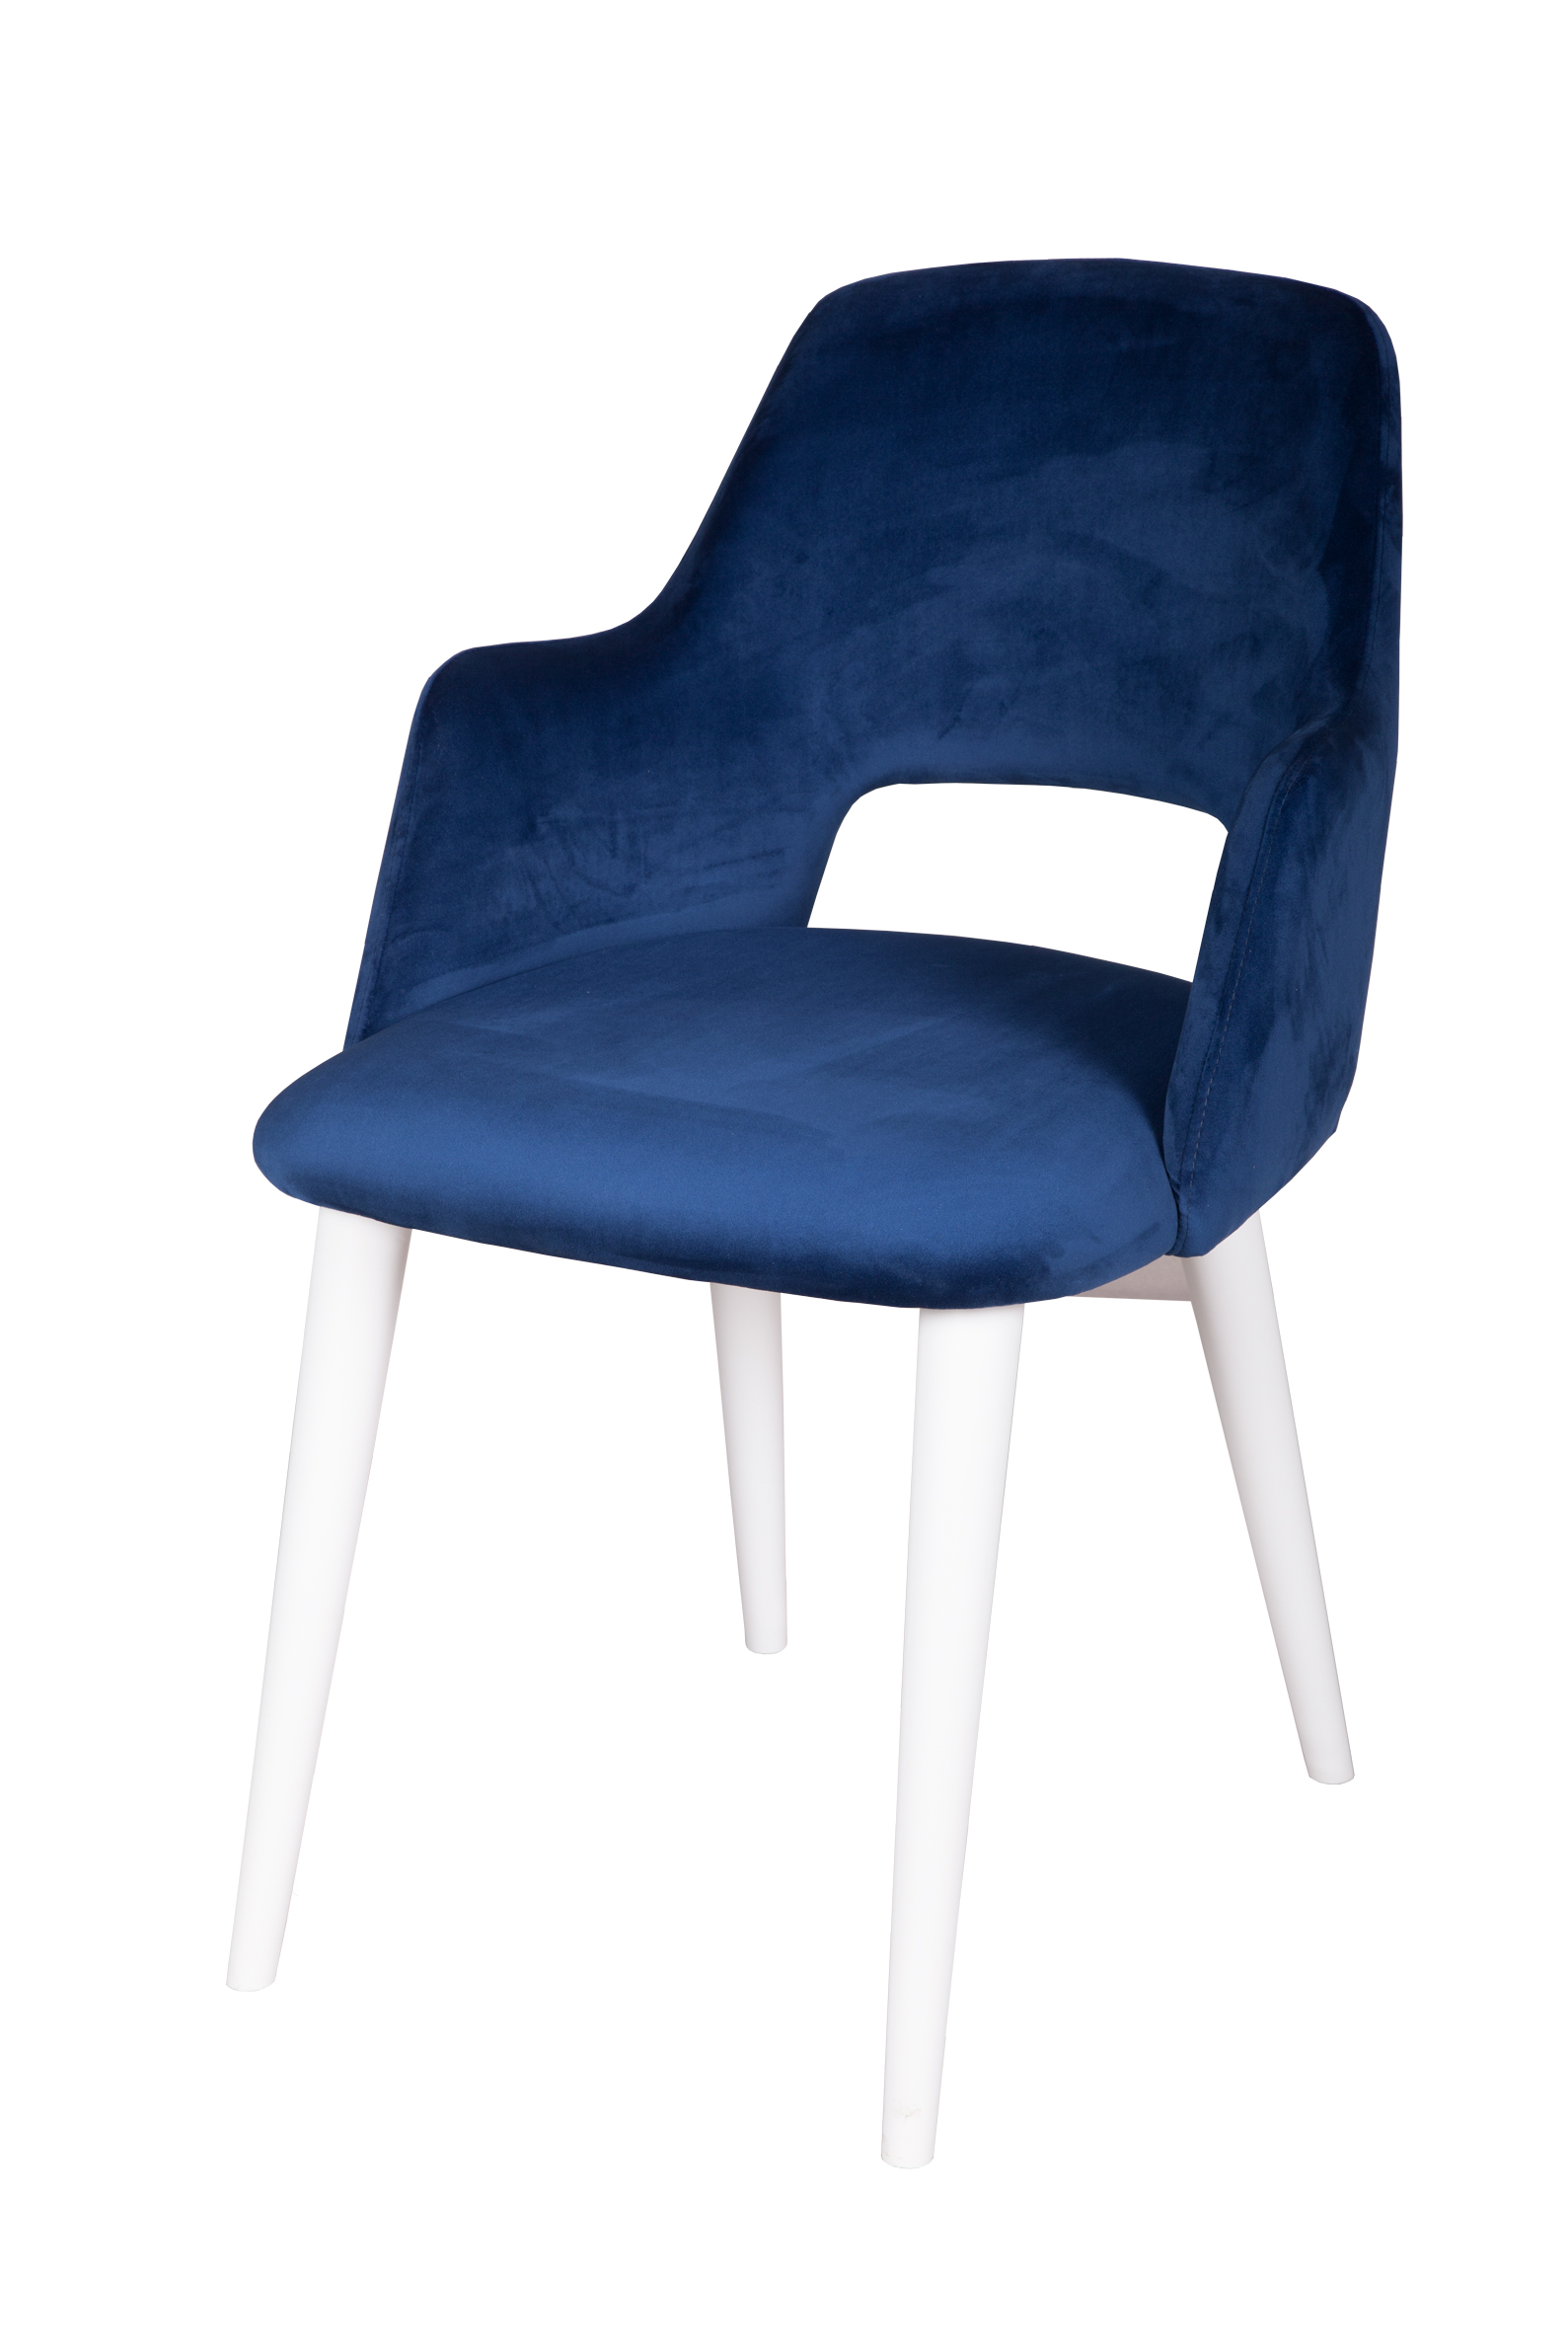 Solid wood chair 1389